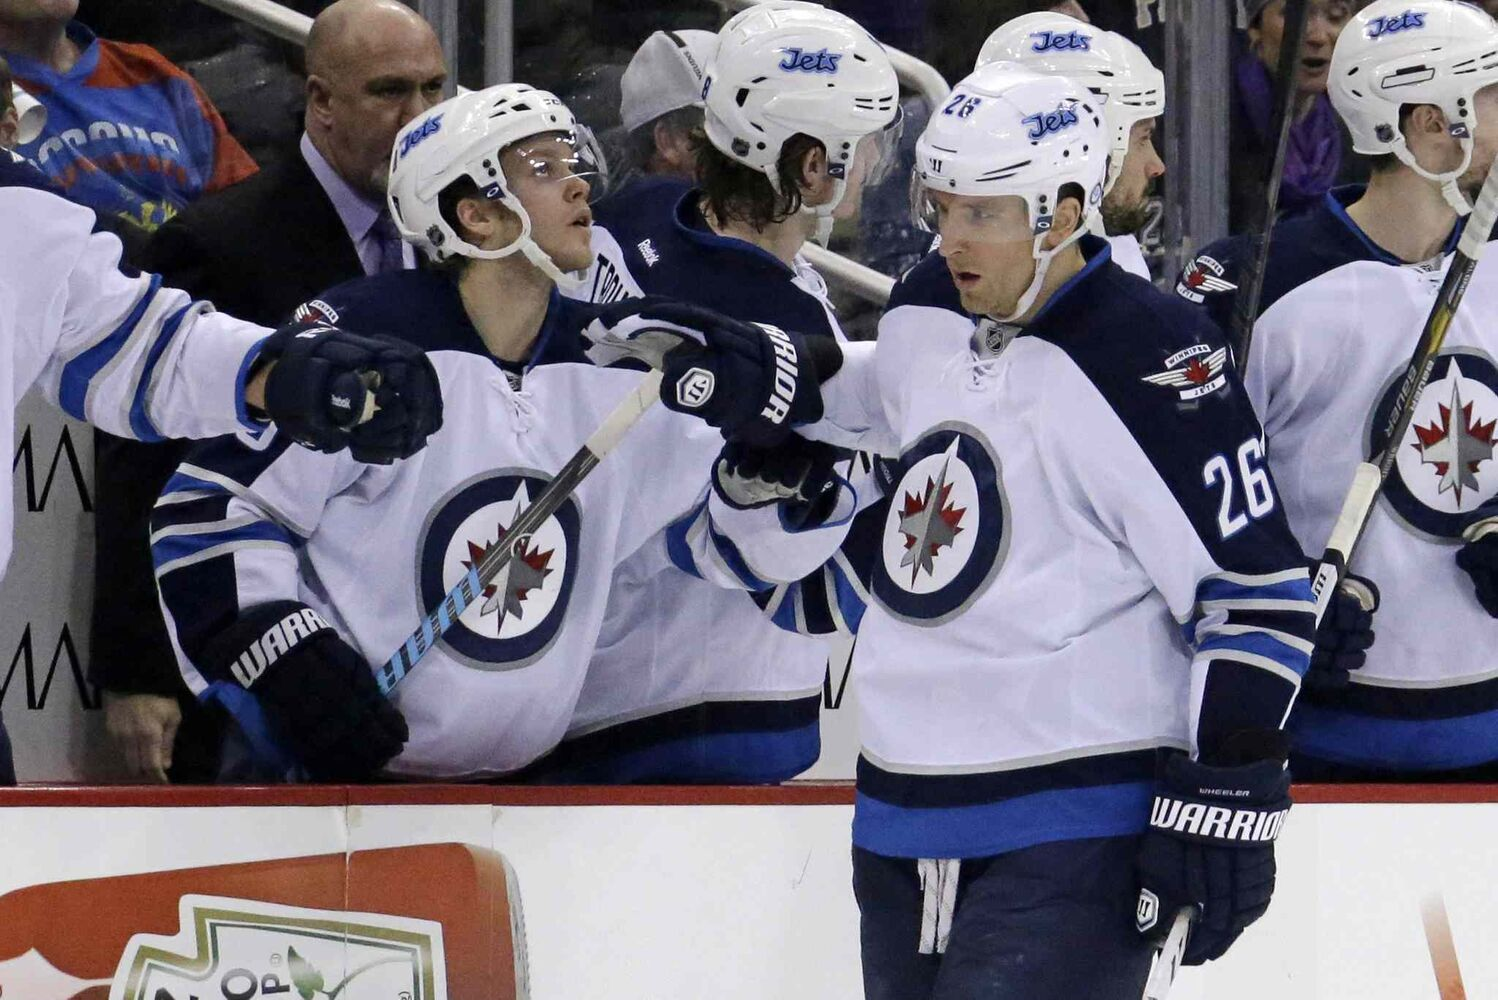 Jets forward Blake Wheeler celebrates with teammates after scoring in the second period. (GENE J. PUSKAR / THE ASSOCIATED PRESS)